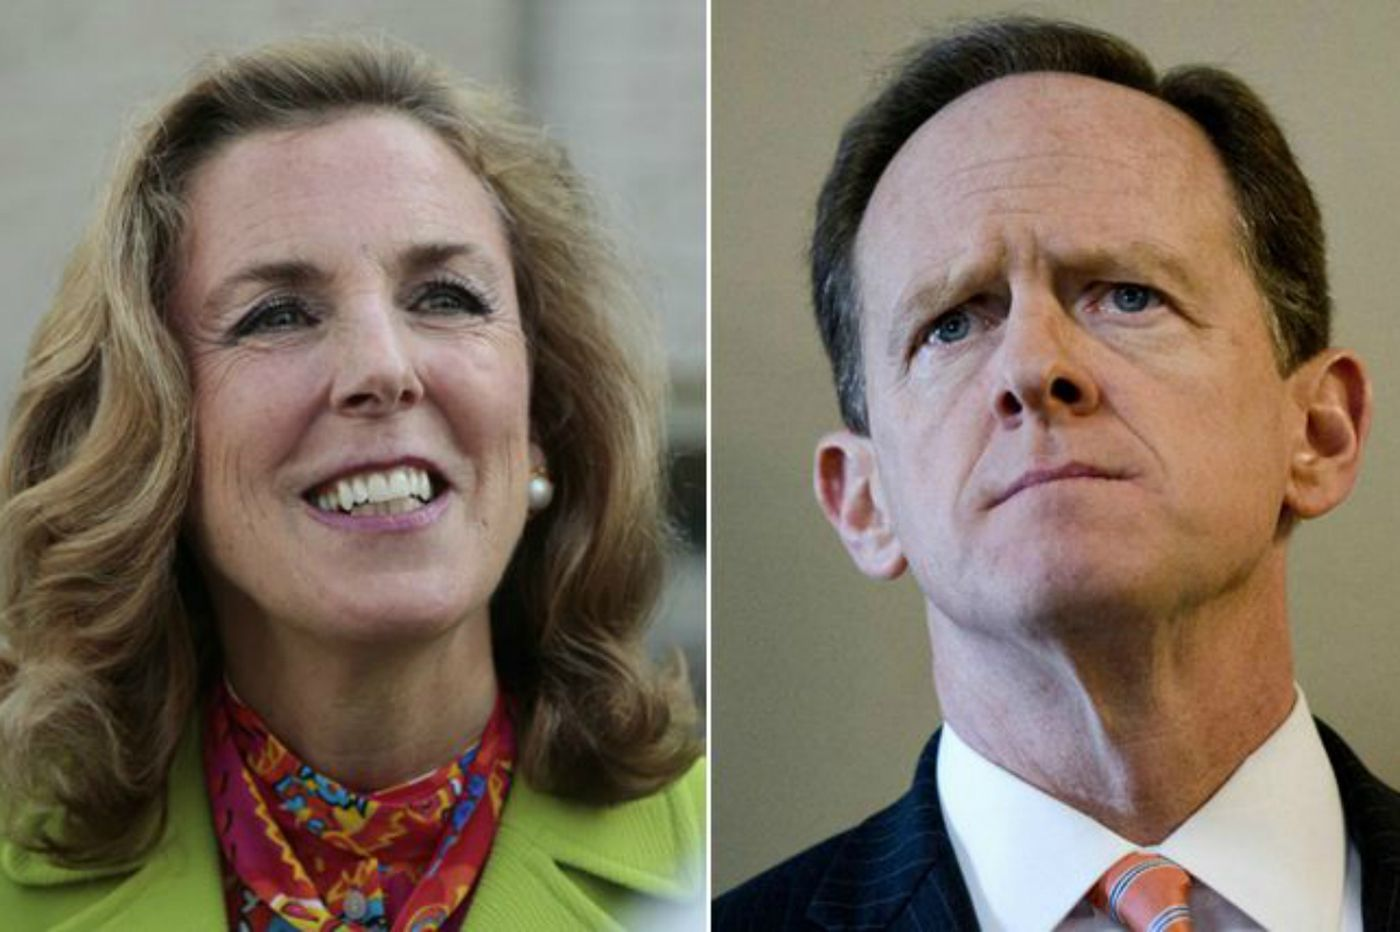 Baer: More violence, same political posturing from McGinty, Toomey